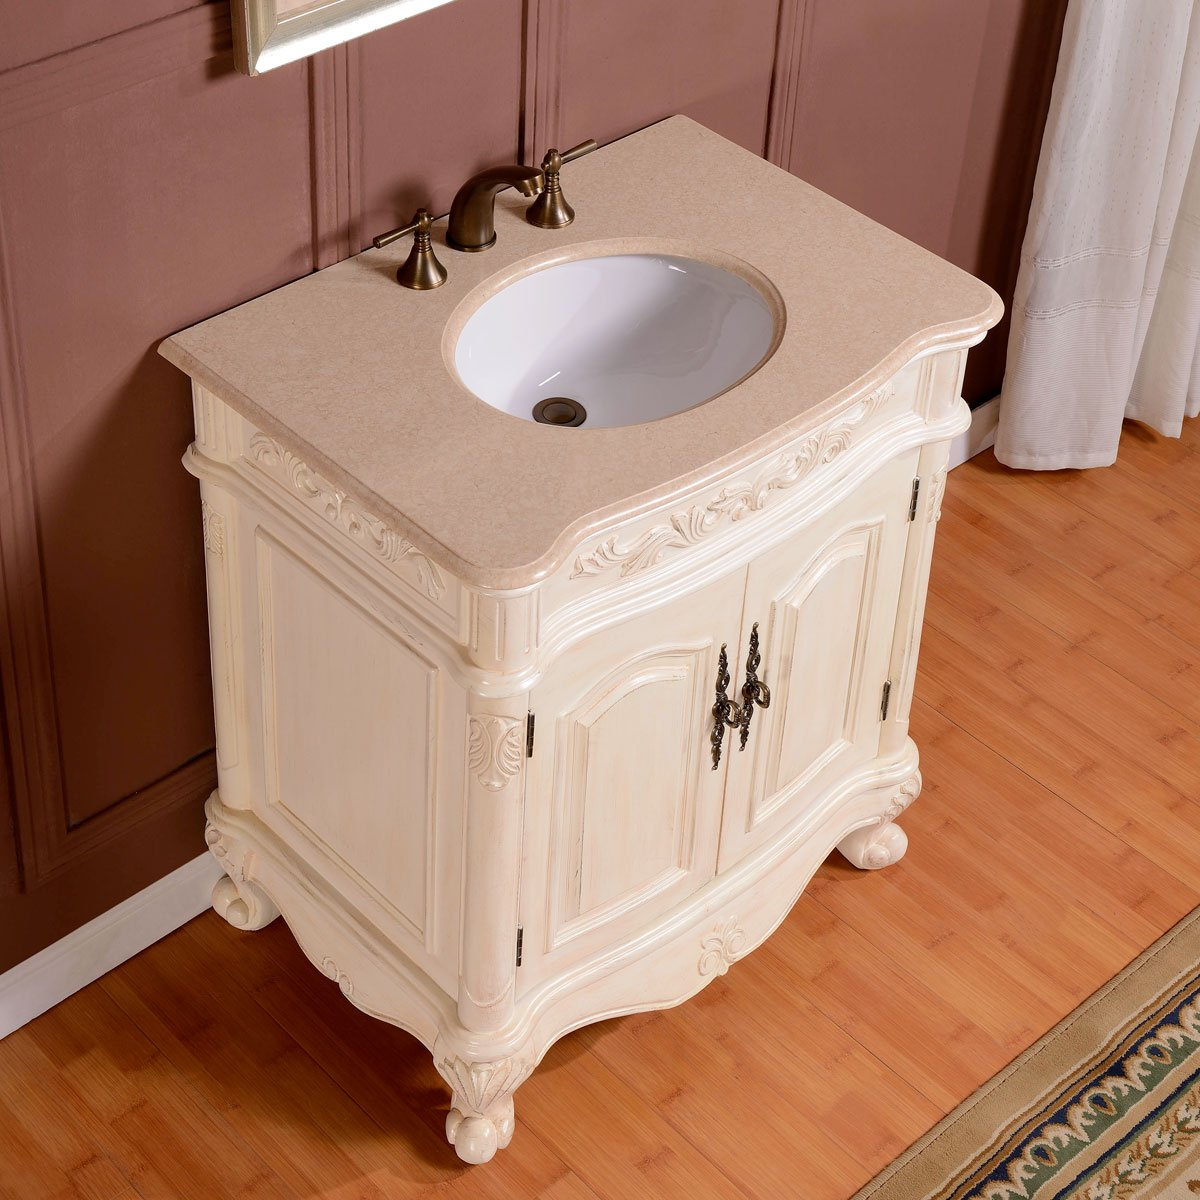 Bathroom vanity with cabinet on top - Amazon Com Silkroad Exclusive Marble Stone Top Single Sink Bathroom Vanity With White Oak Finish Cabinet 32 Inch Home Kitchen